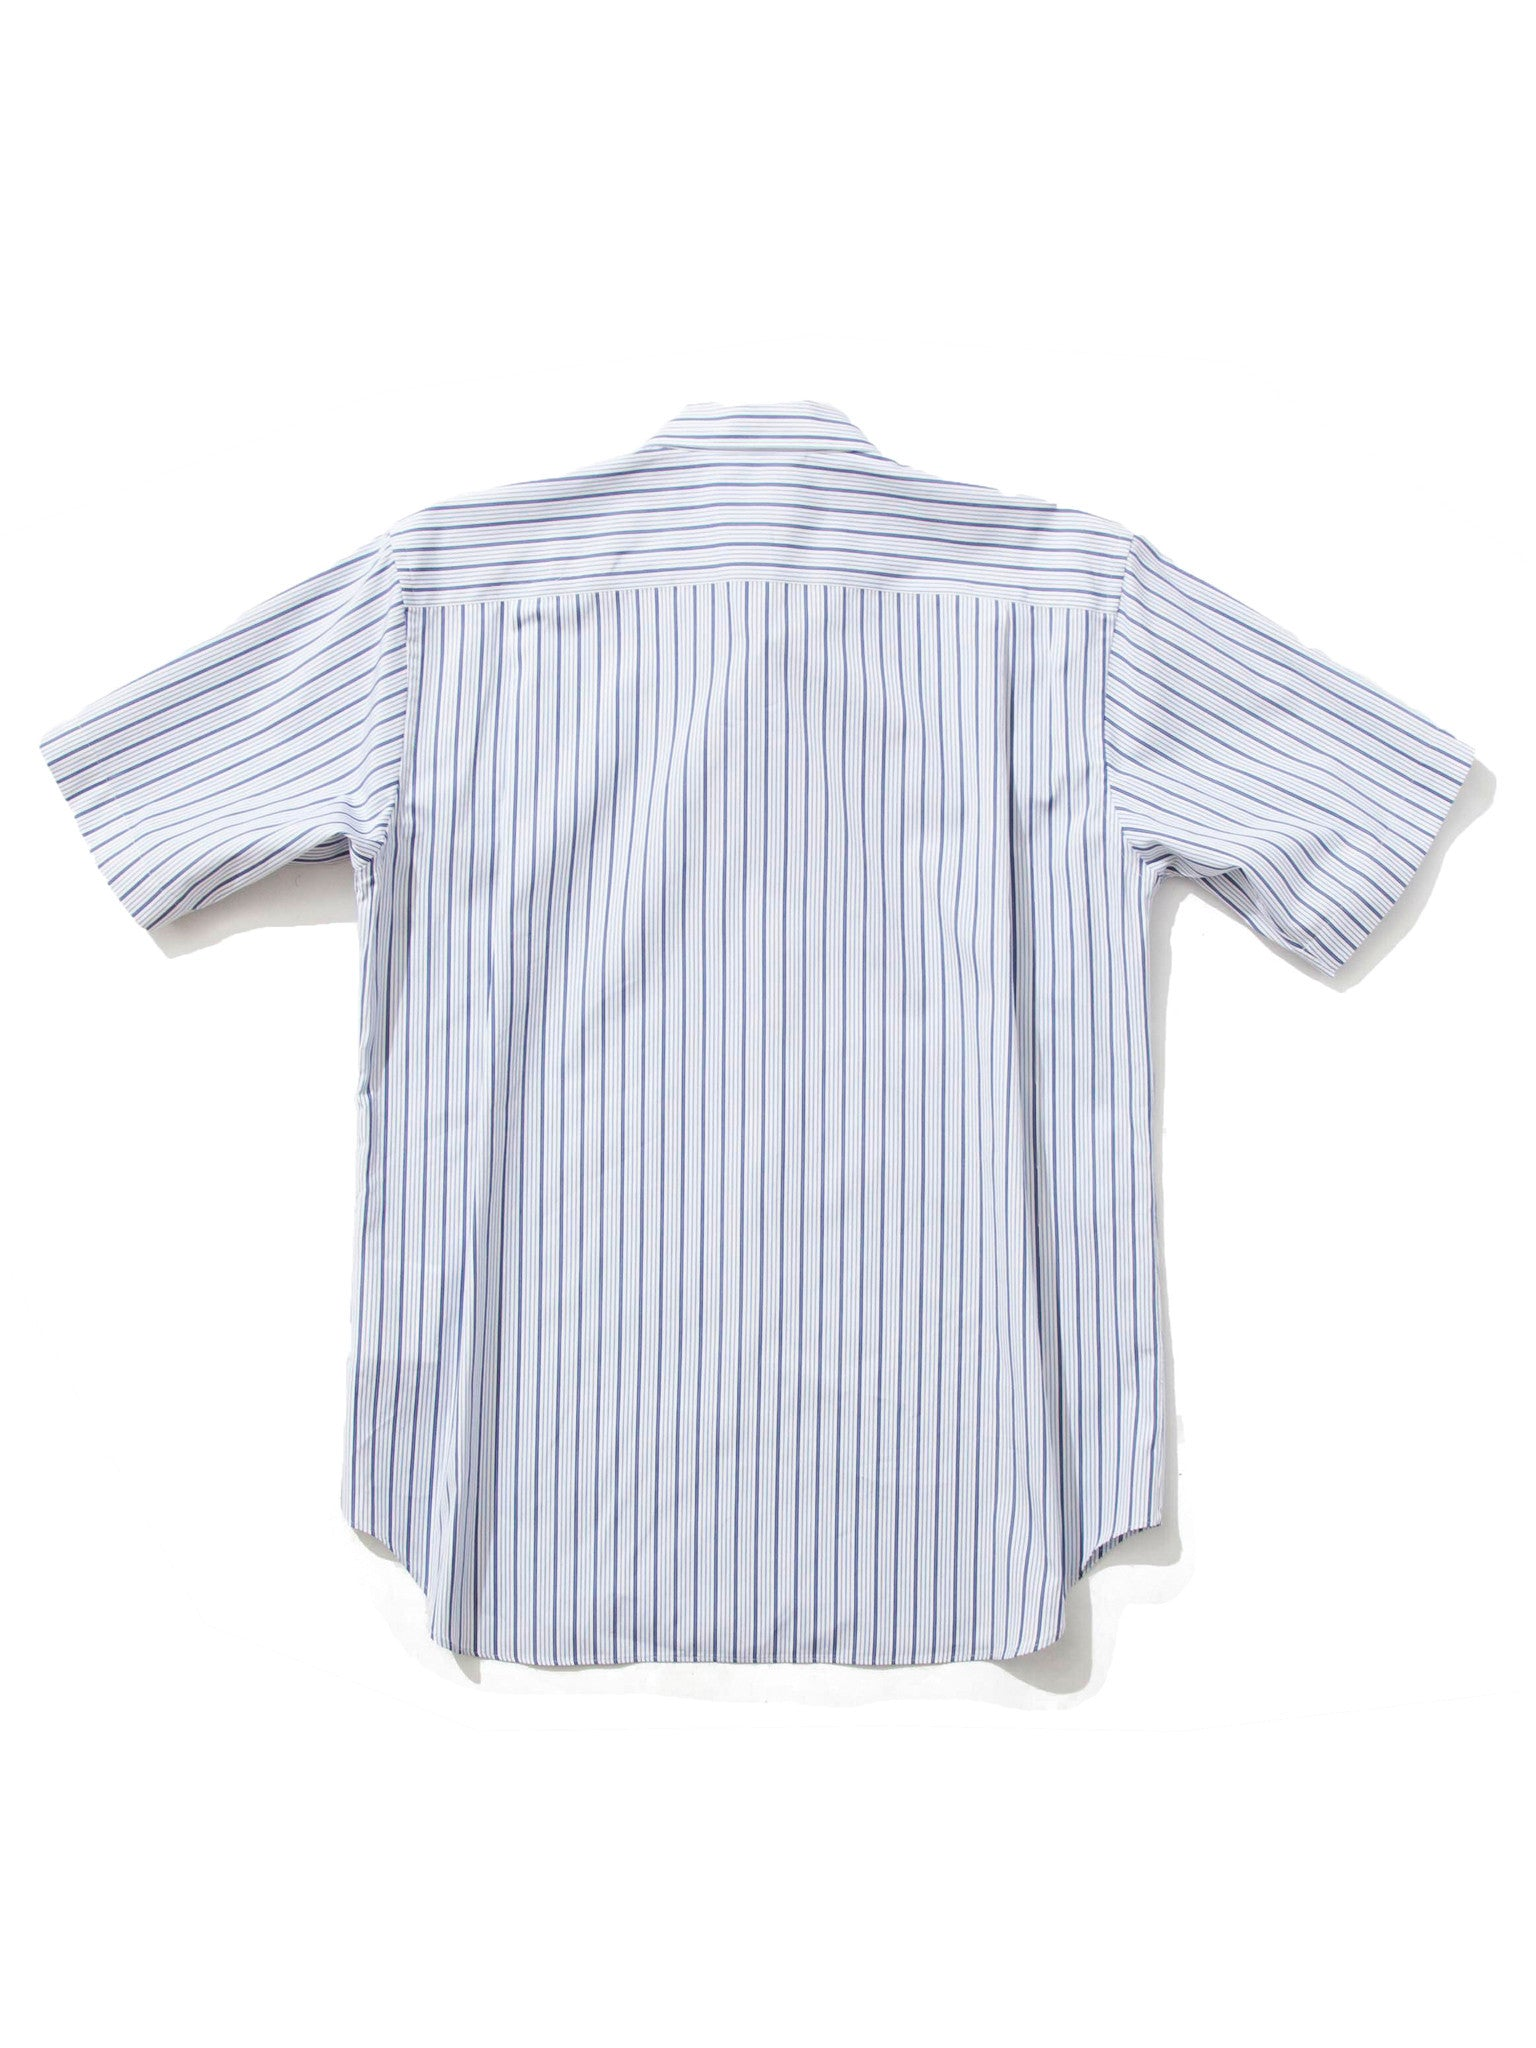 Stripe Short Sleeve Shirt